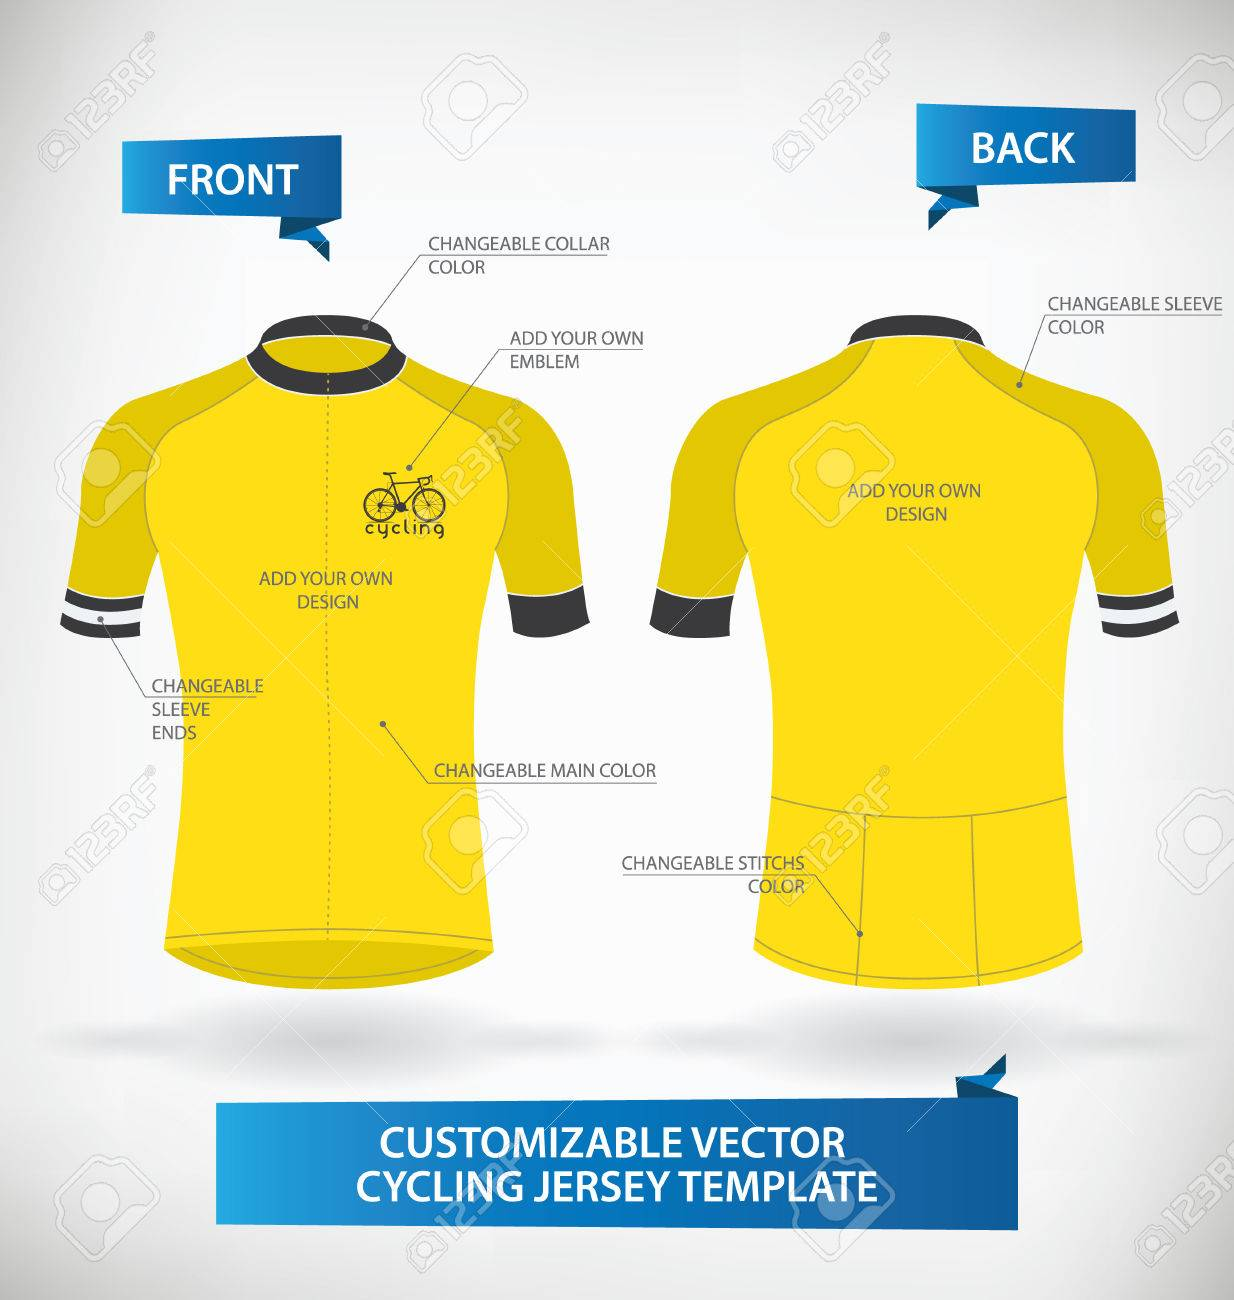 Design your own t-shirt front and back - Football Jersey Customizable Vector Cycling Jersey Template